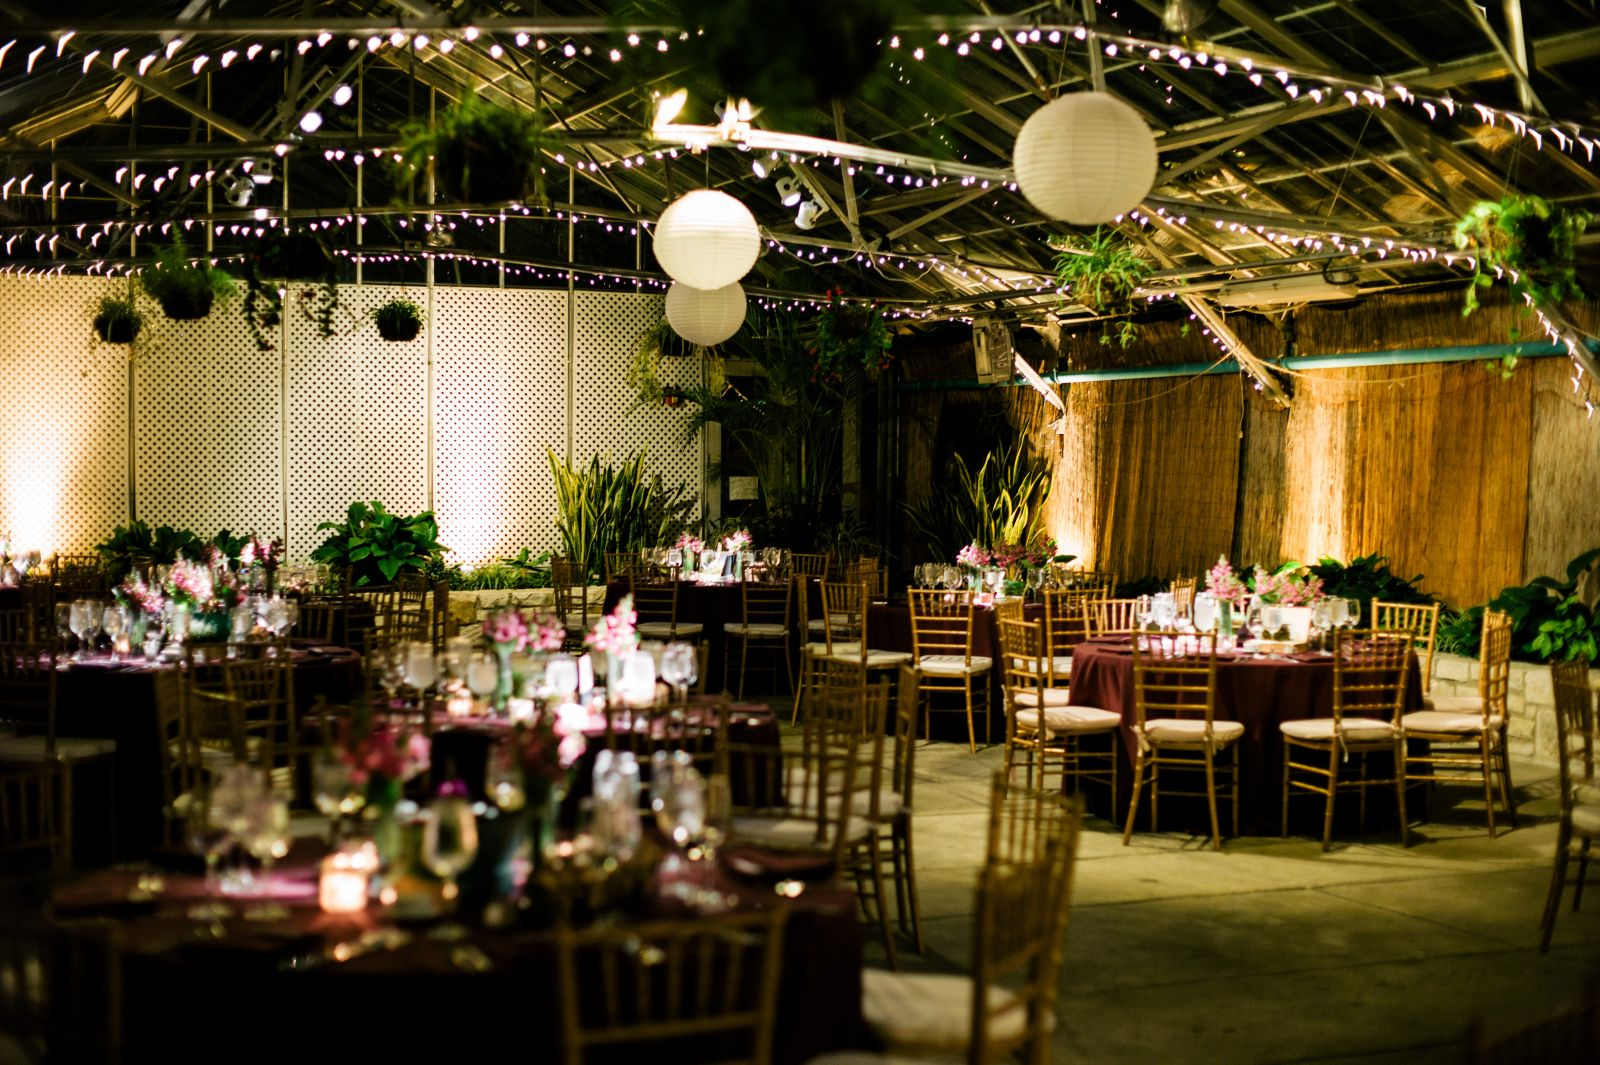 Wedding Venues Philadelphia | Starry Night Weddings All Year Long Partyspace